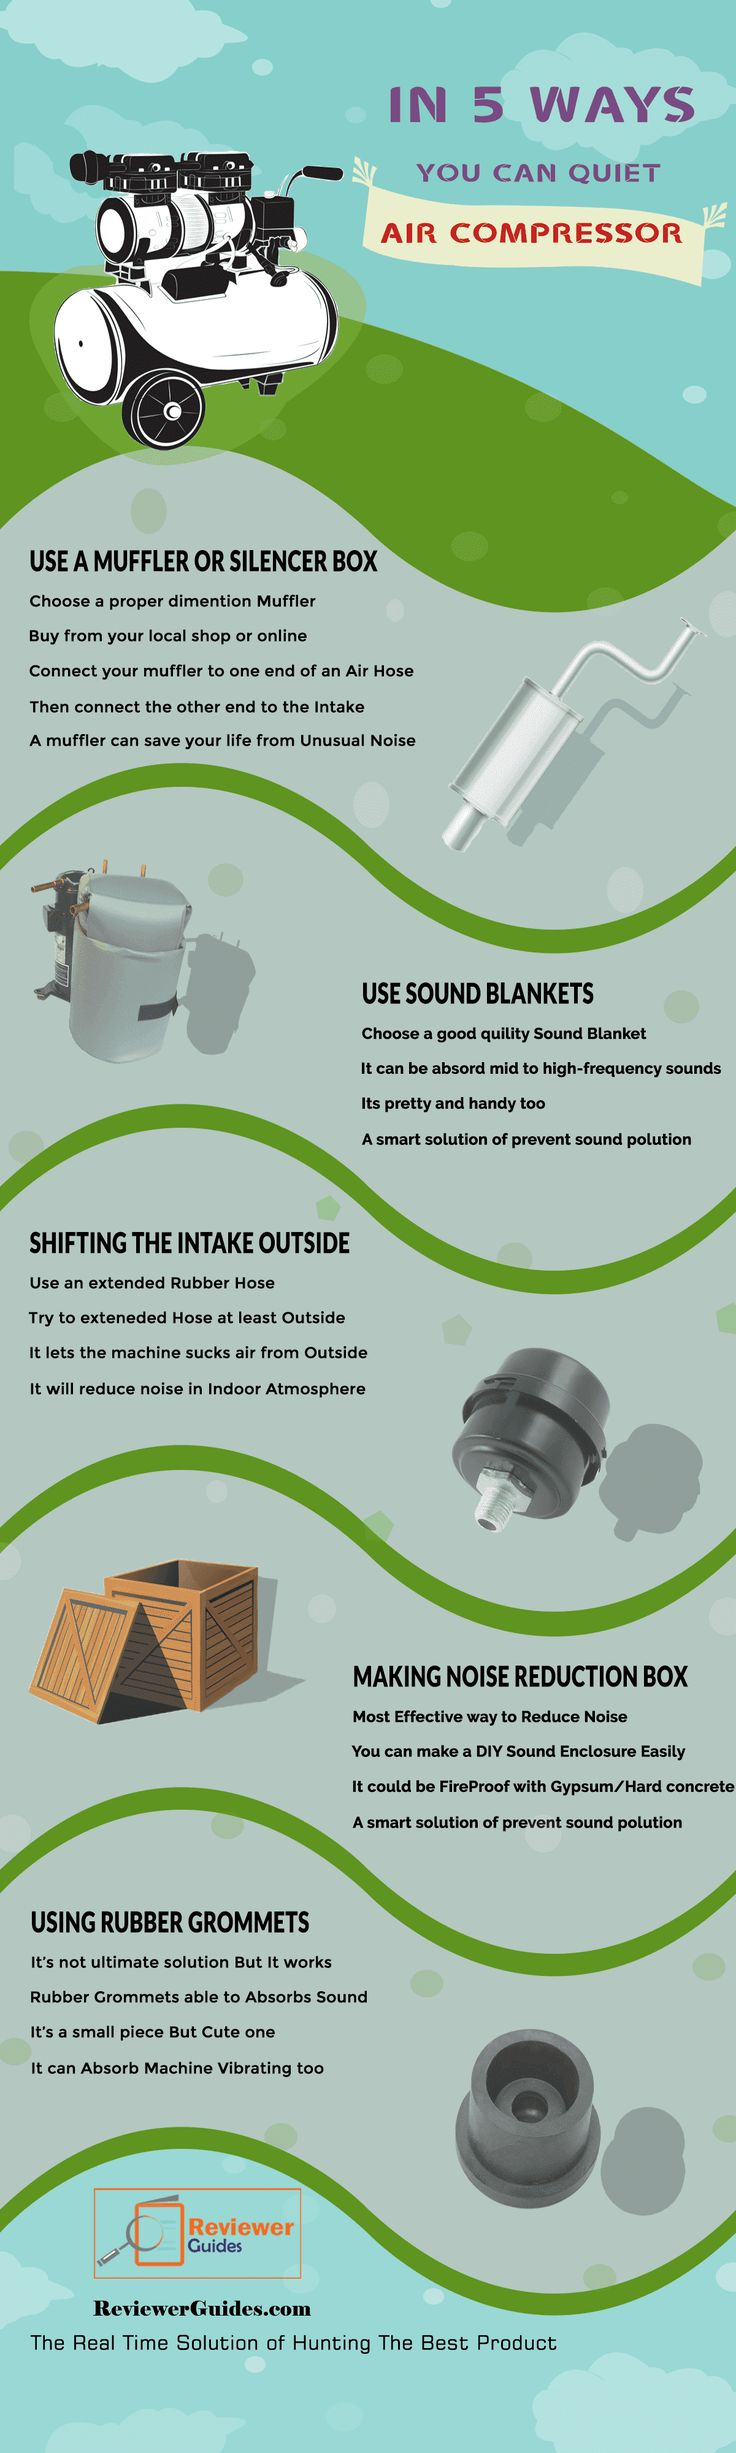 In Multiple Ways How To Quiet Air Compressor infographic